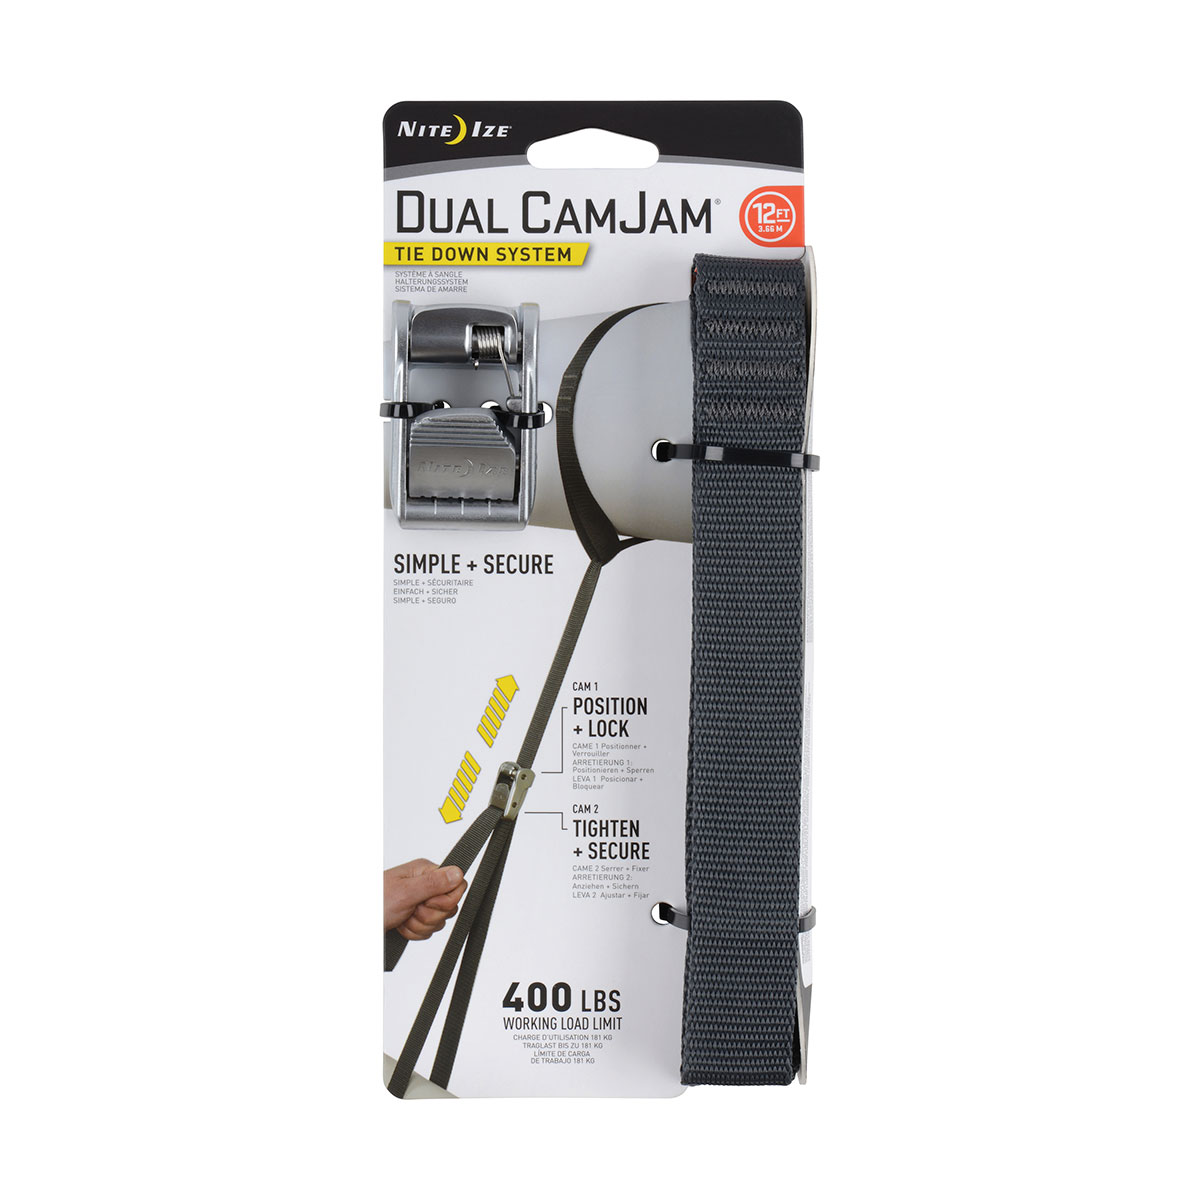 Dual CamJam Tie Down System 12 FT